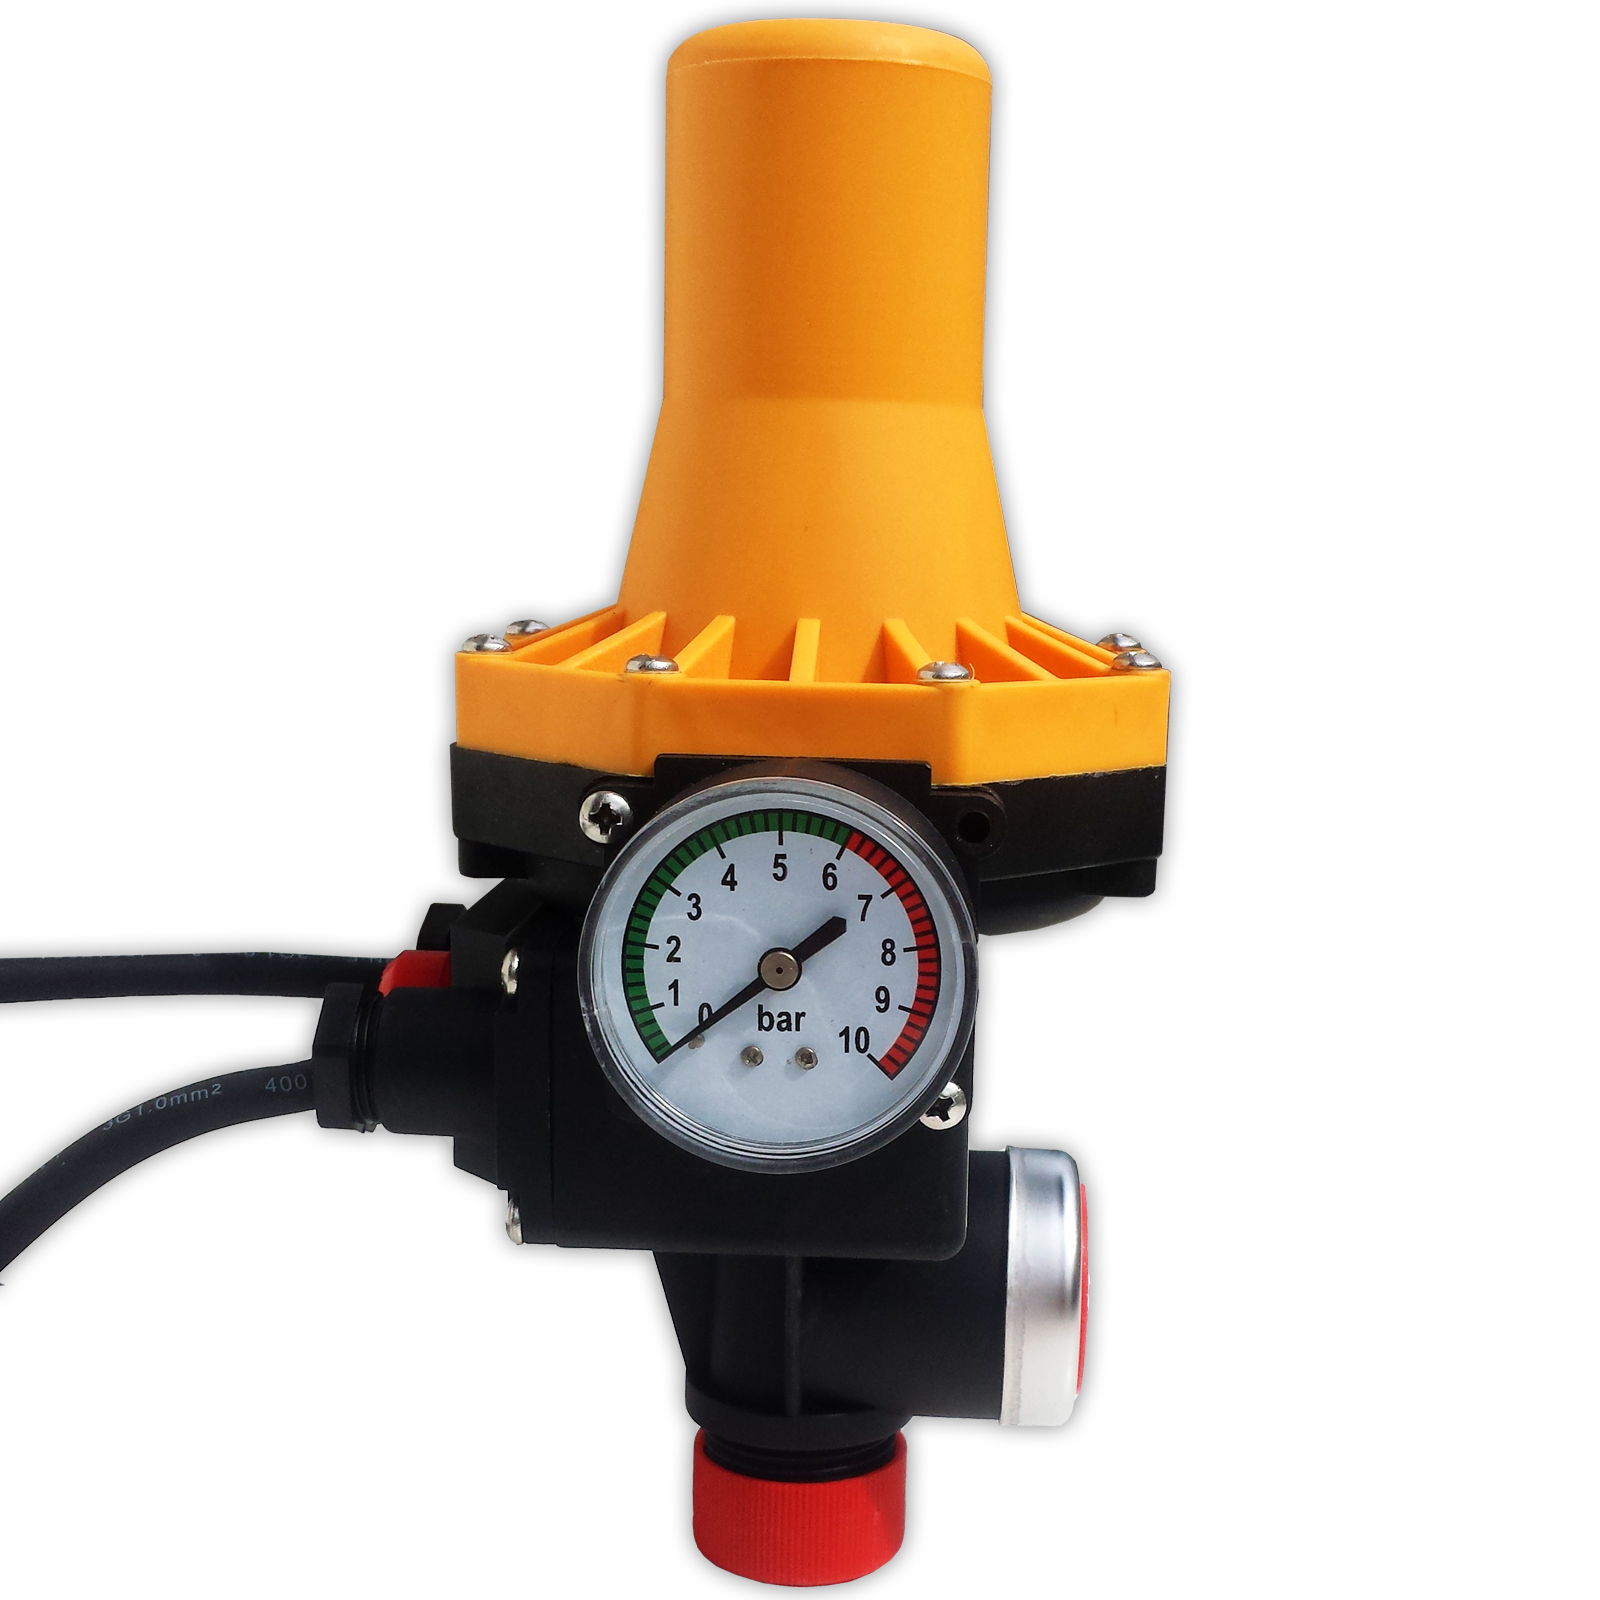 kreiselpumpe 1300w jetpumpe gartenpumpe hauswasserwerk mit. Black Bedroom Furniture Sets. Home Design Ideas